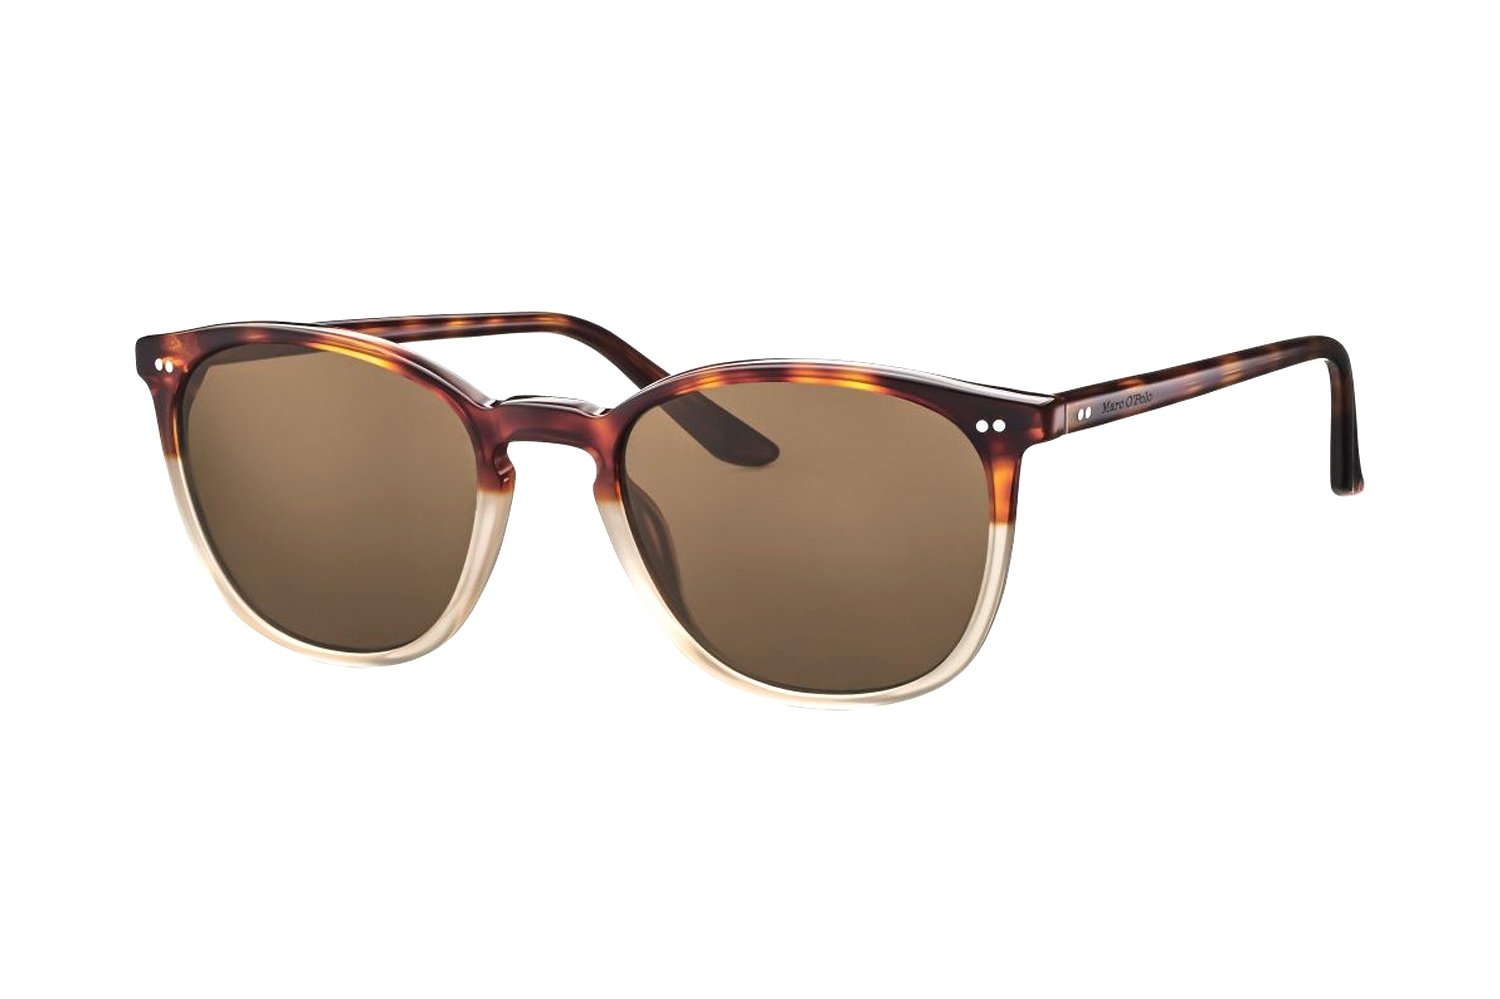 Marc O'Polo Eyewear Marc O'Polo 506113 60 Havanna 8q4A8